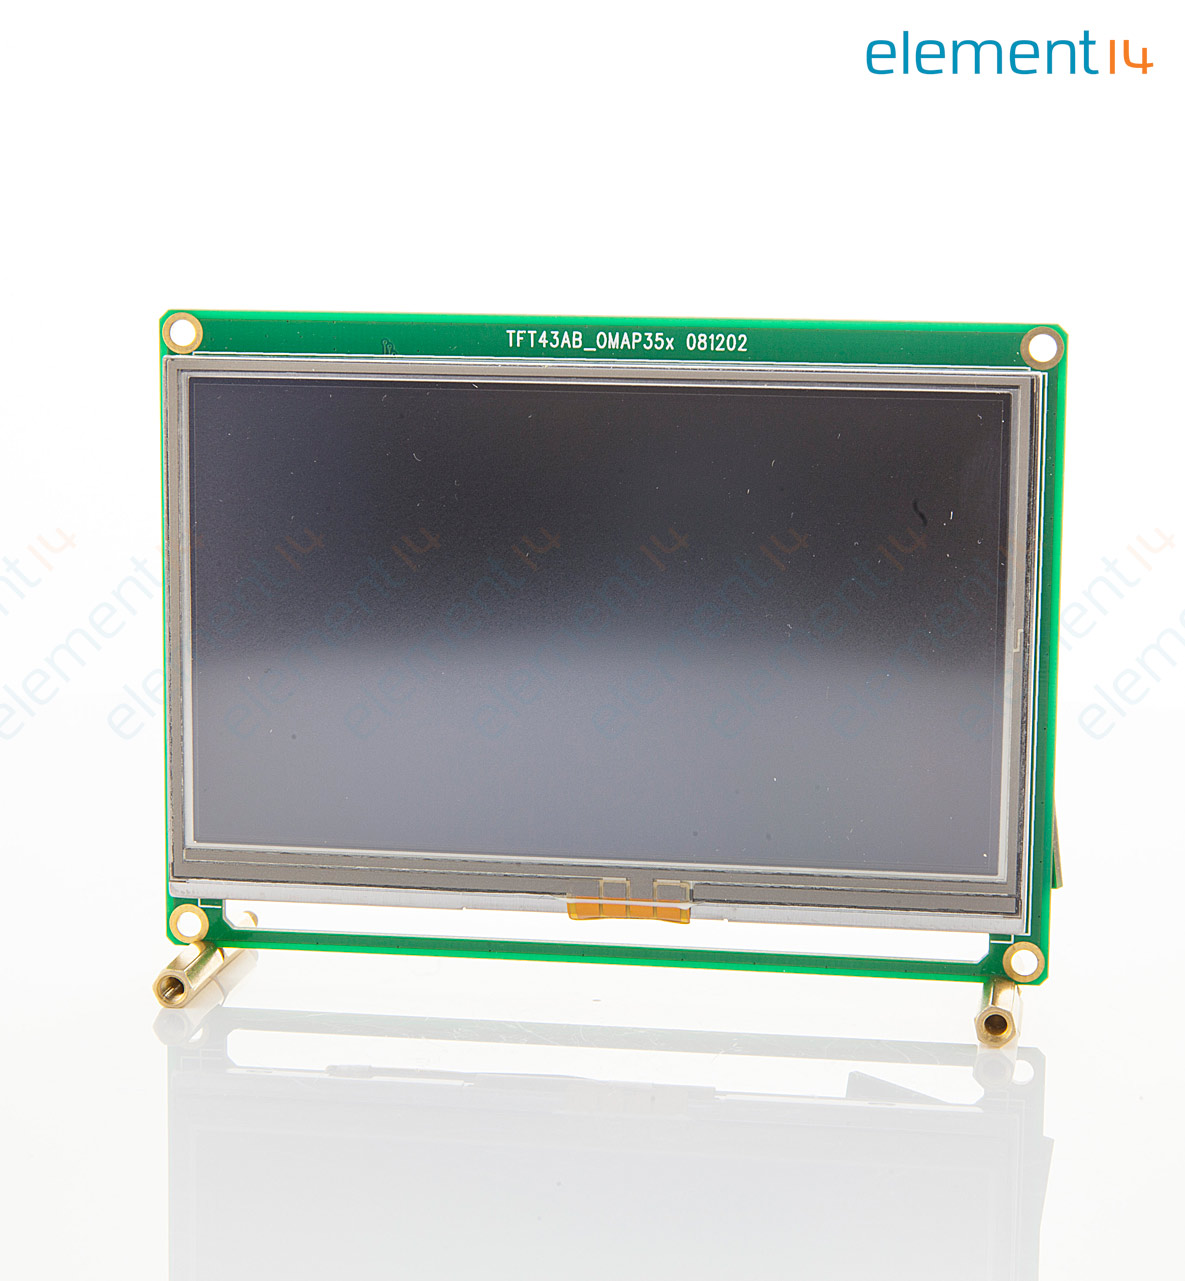 Lcd8000 70t Ex1 Element14 Lcd Module W Conversion Board Riot Tools And Solutions Best Free Onli Community Add To Compare